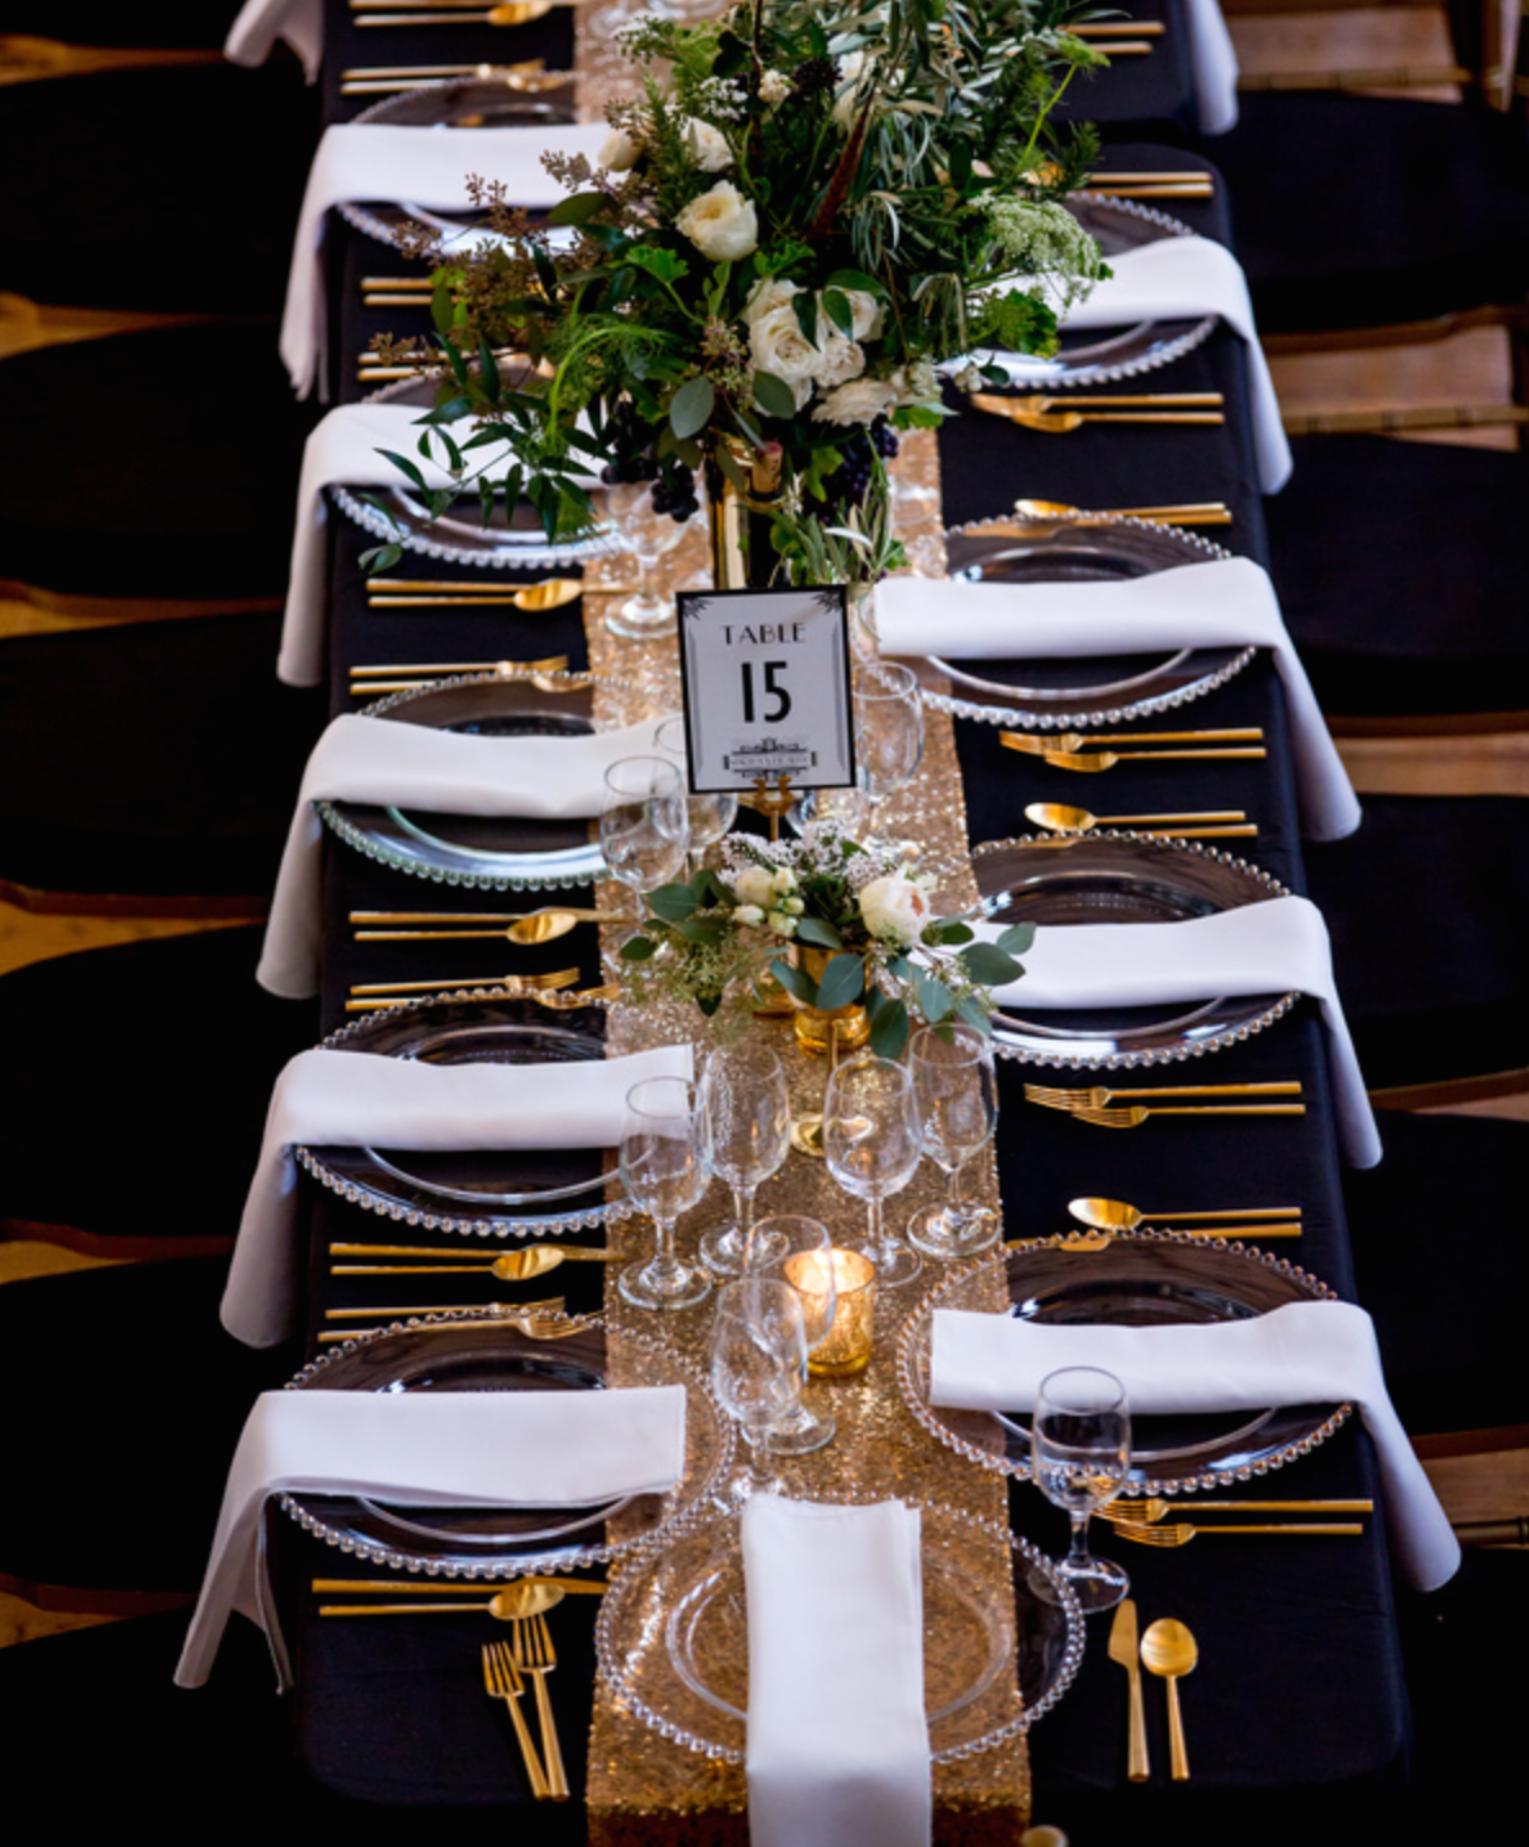 Art Deco Wedding Centerpieces Another Stunning Elegant Tablescape For The Perfect Bride